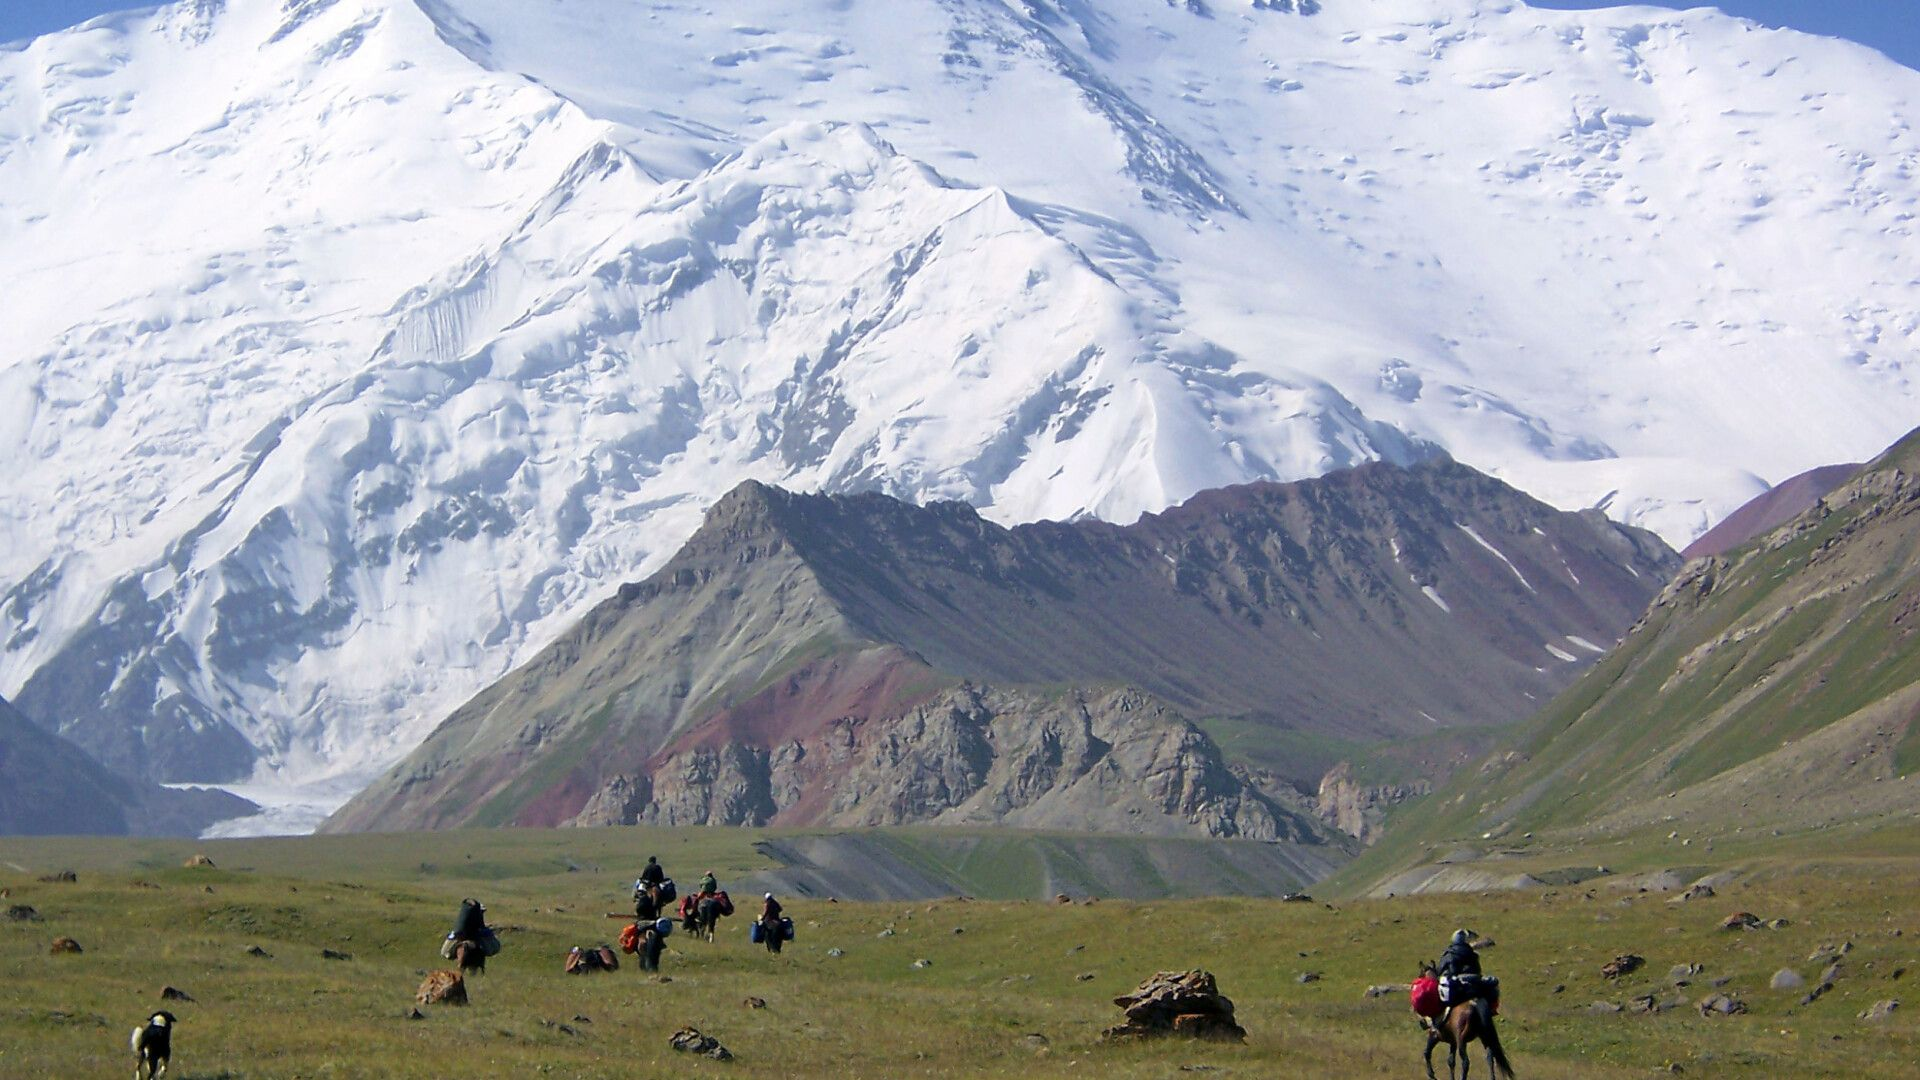 Kirgistan | Pamir: Expeditionsreise - Expedition zum Pik Lenin (7134 m)